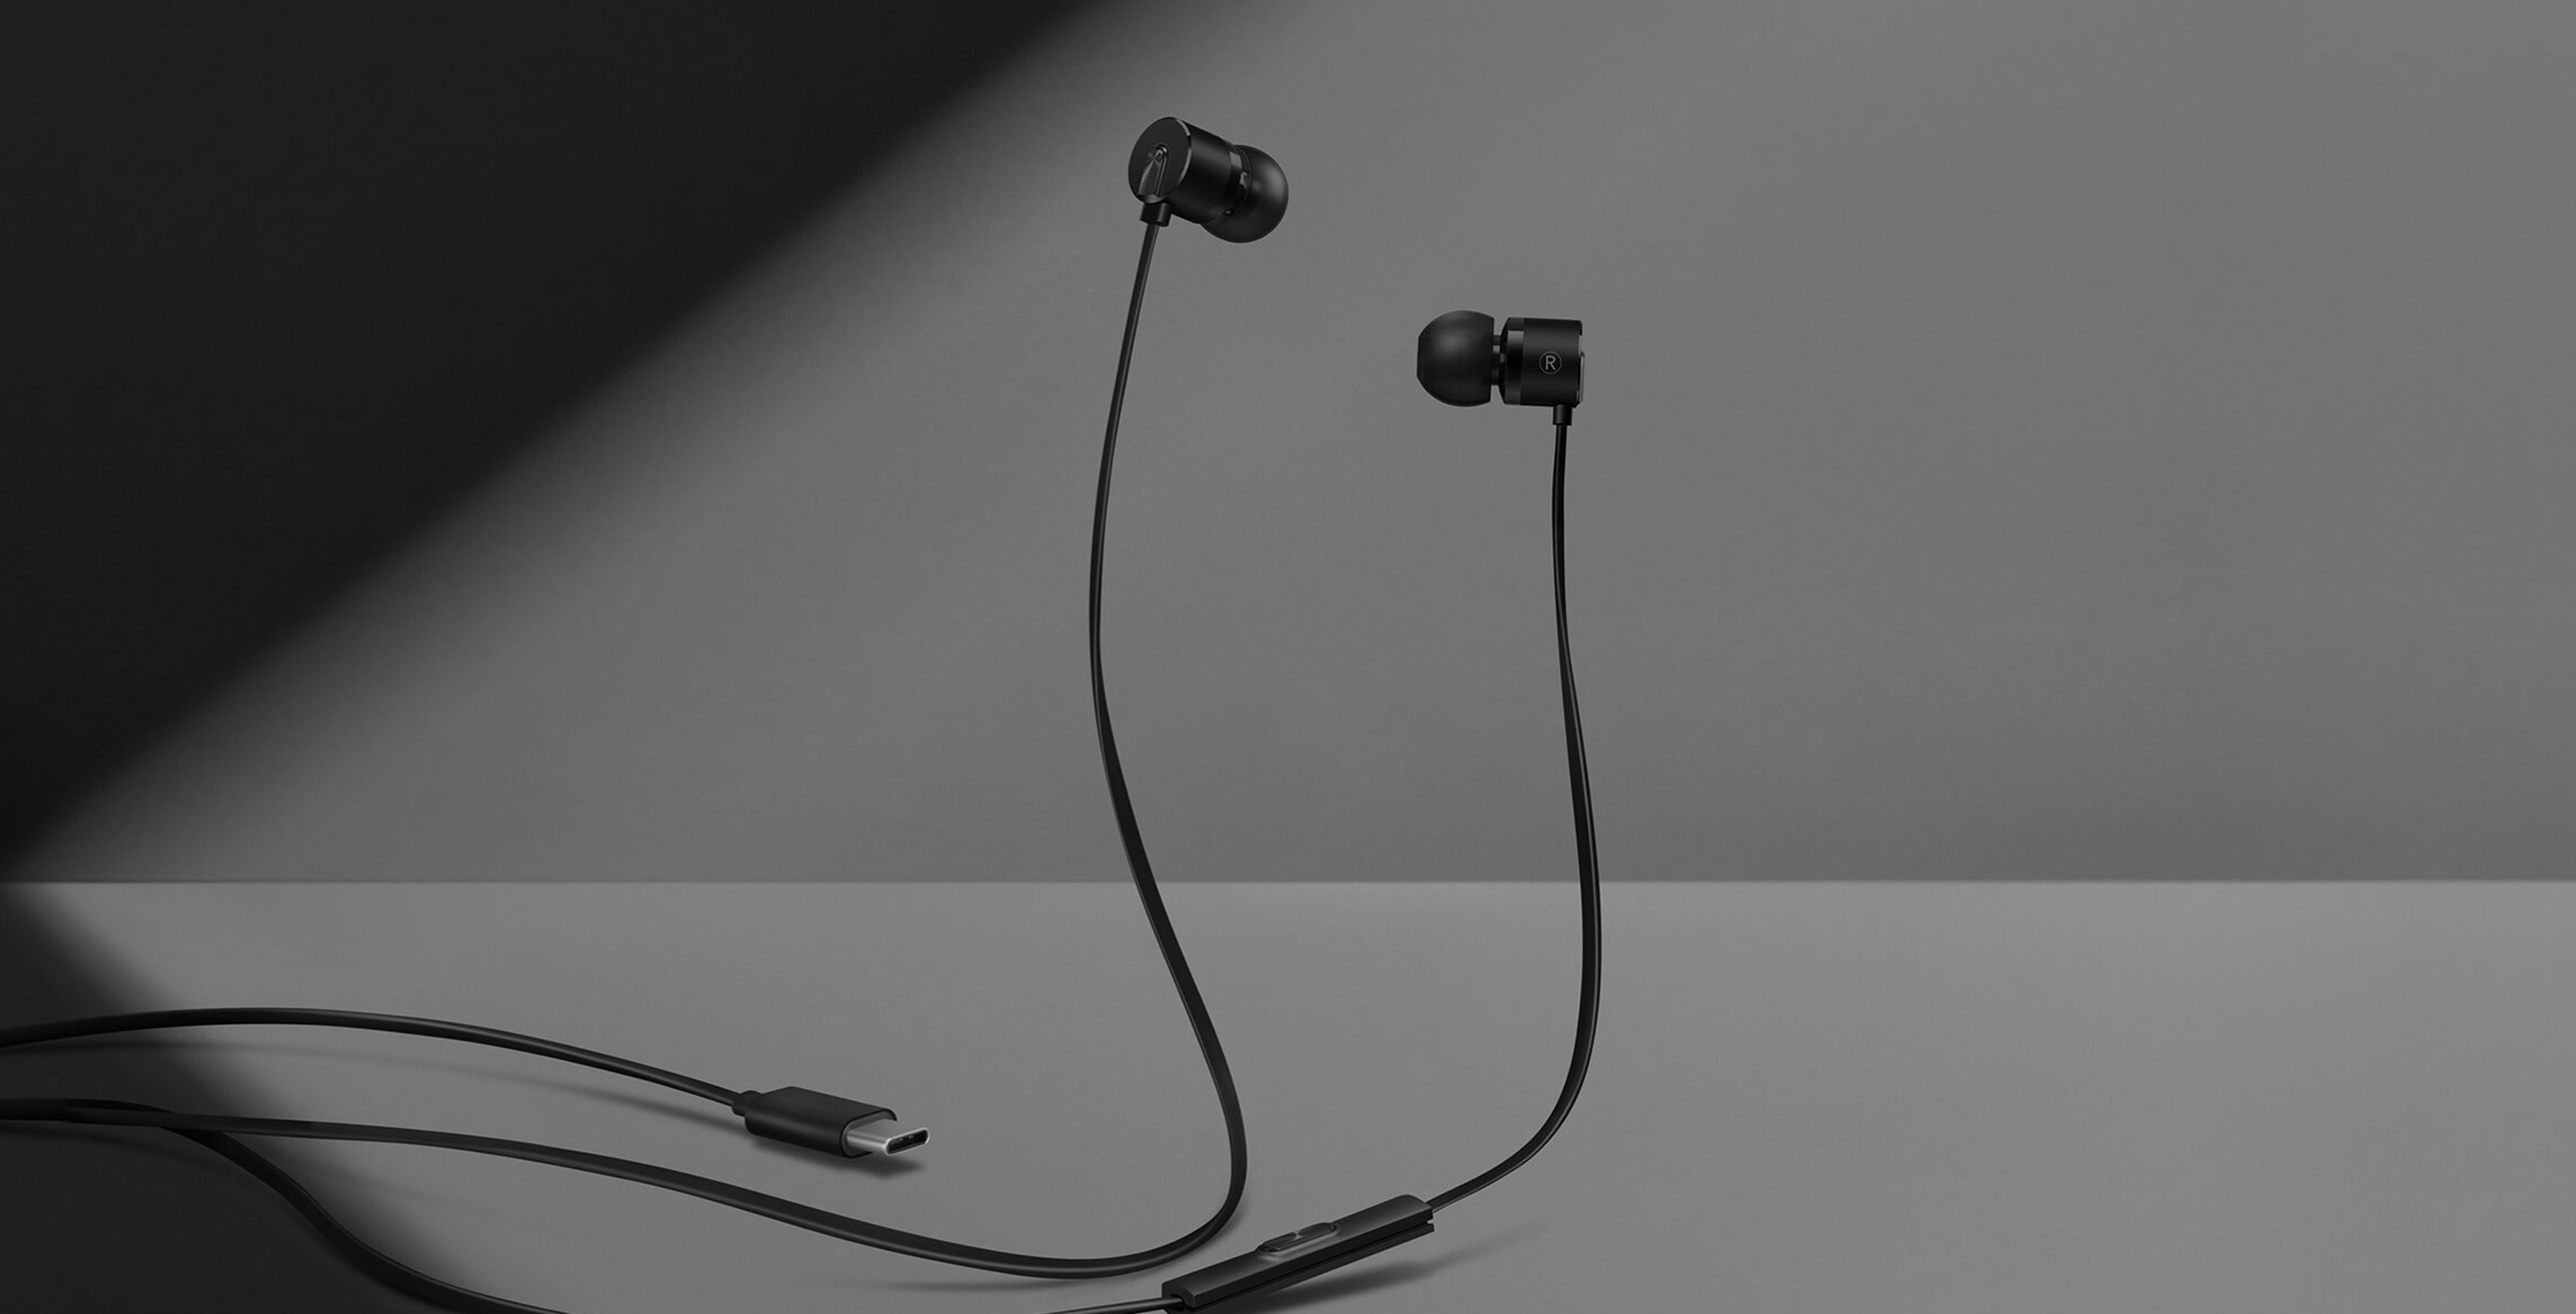 OnePlus' new USB-C Bullets headphones